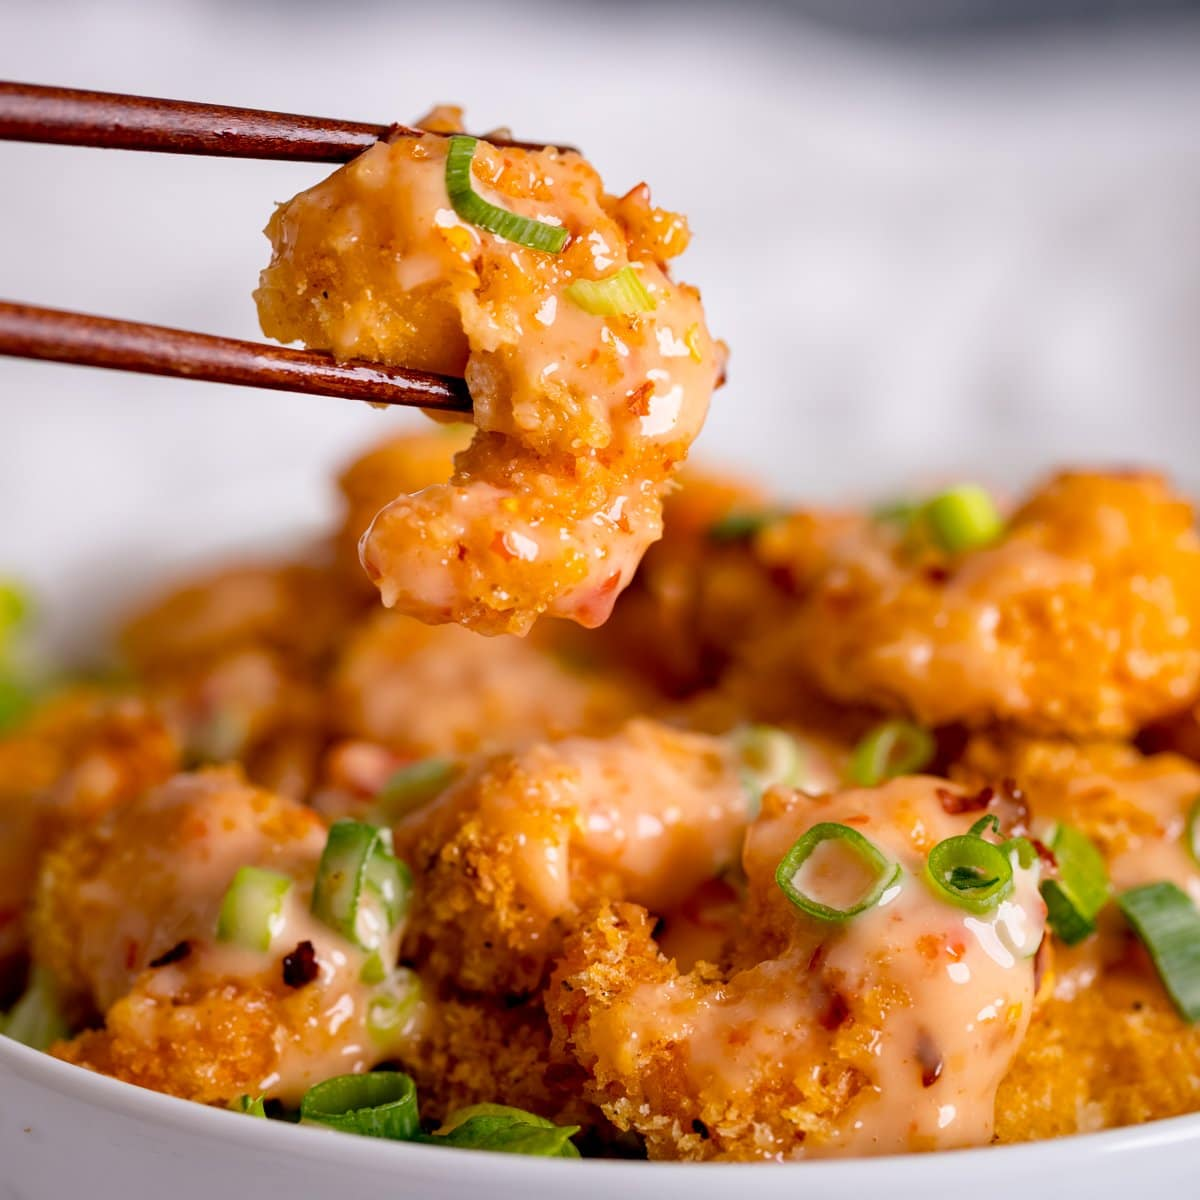 Crispy shrimp being lifted out of a bowl with chopsticks. Shrimp is covered with bang bang sauce.